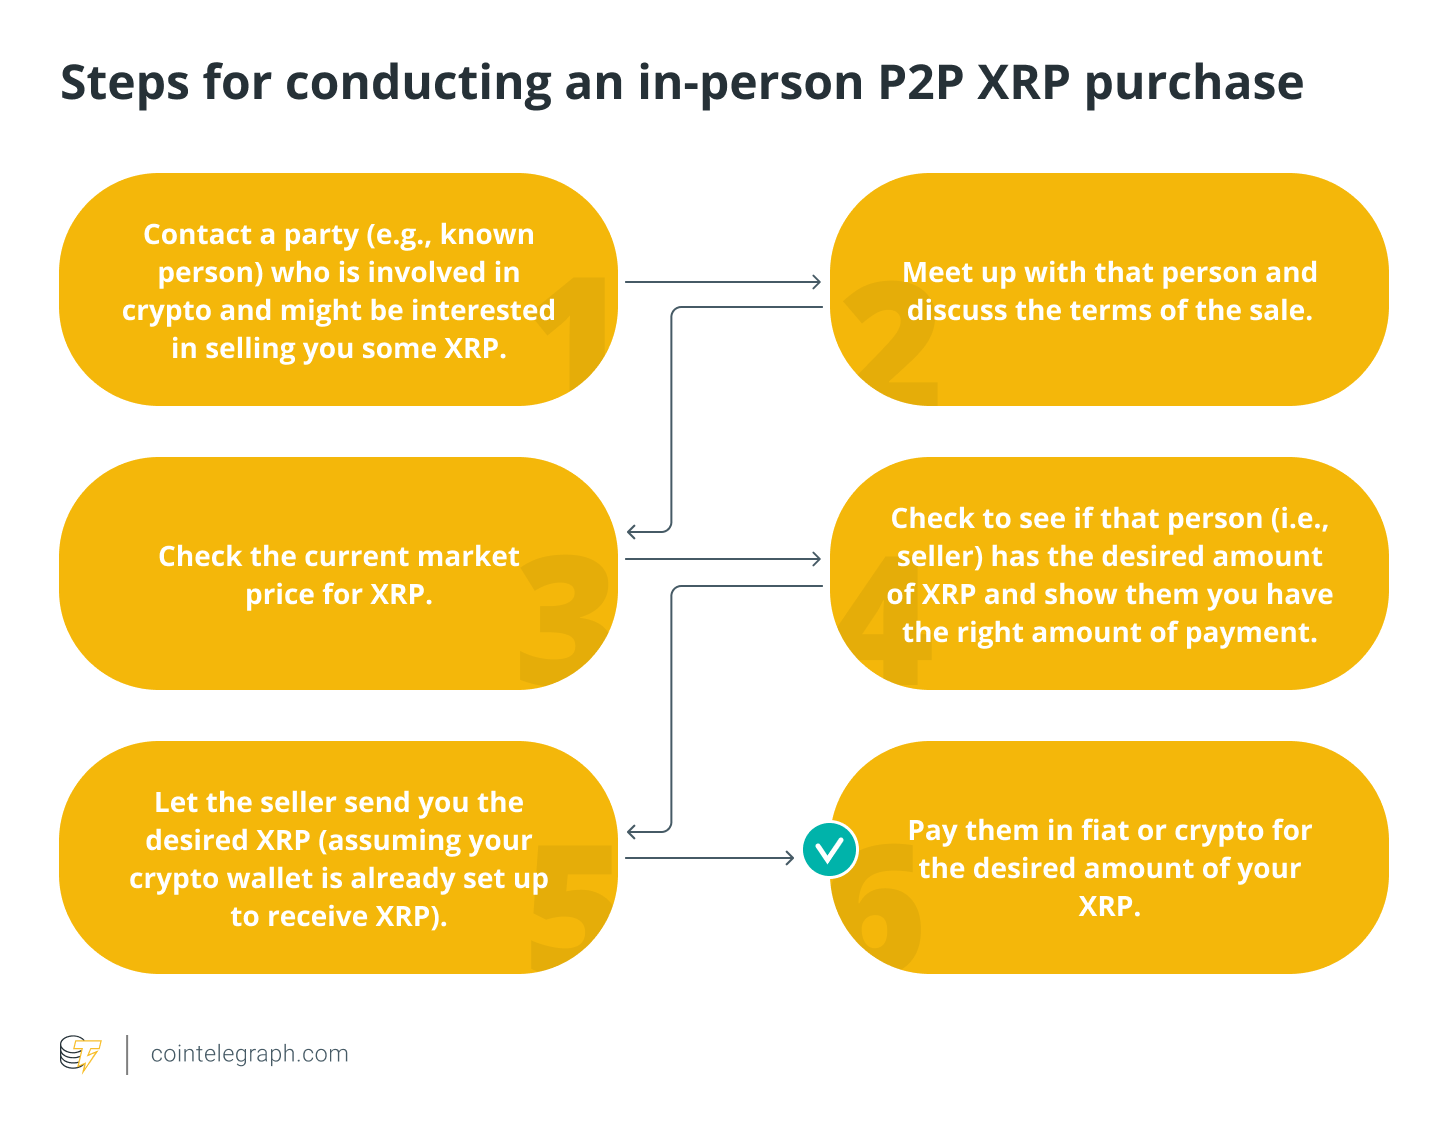 Steps for conducting an in-person P2P XRP purchase